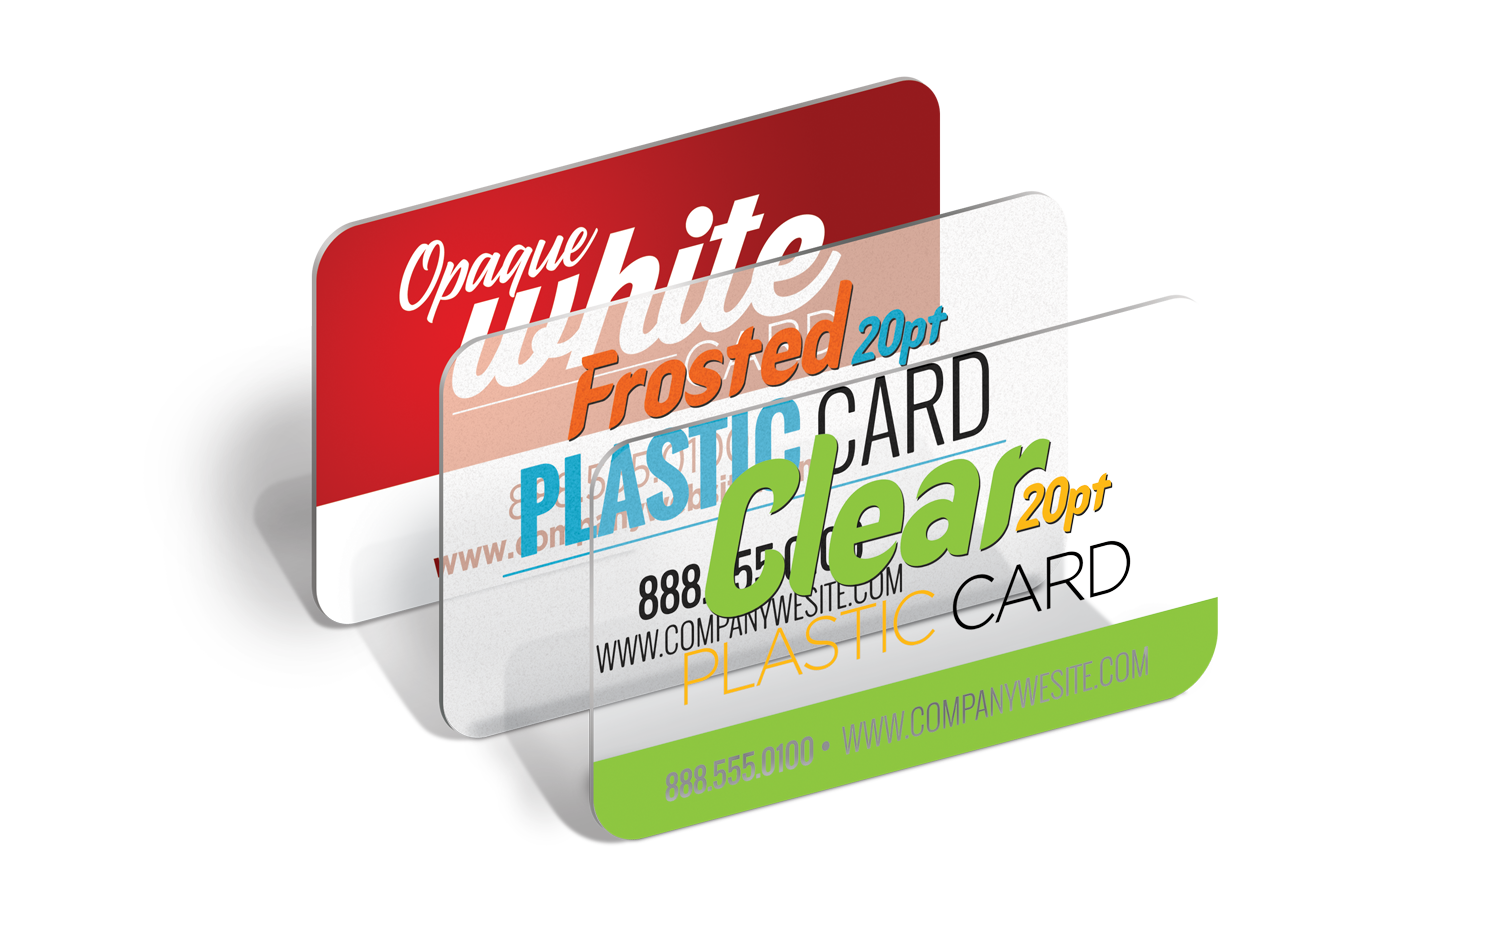 Business cards png. Plastic white